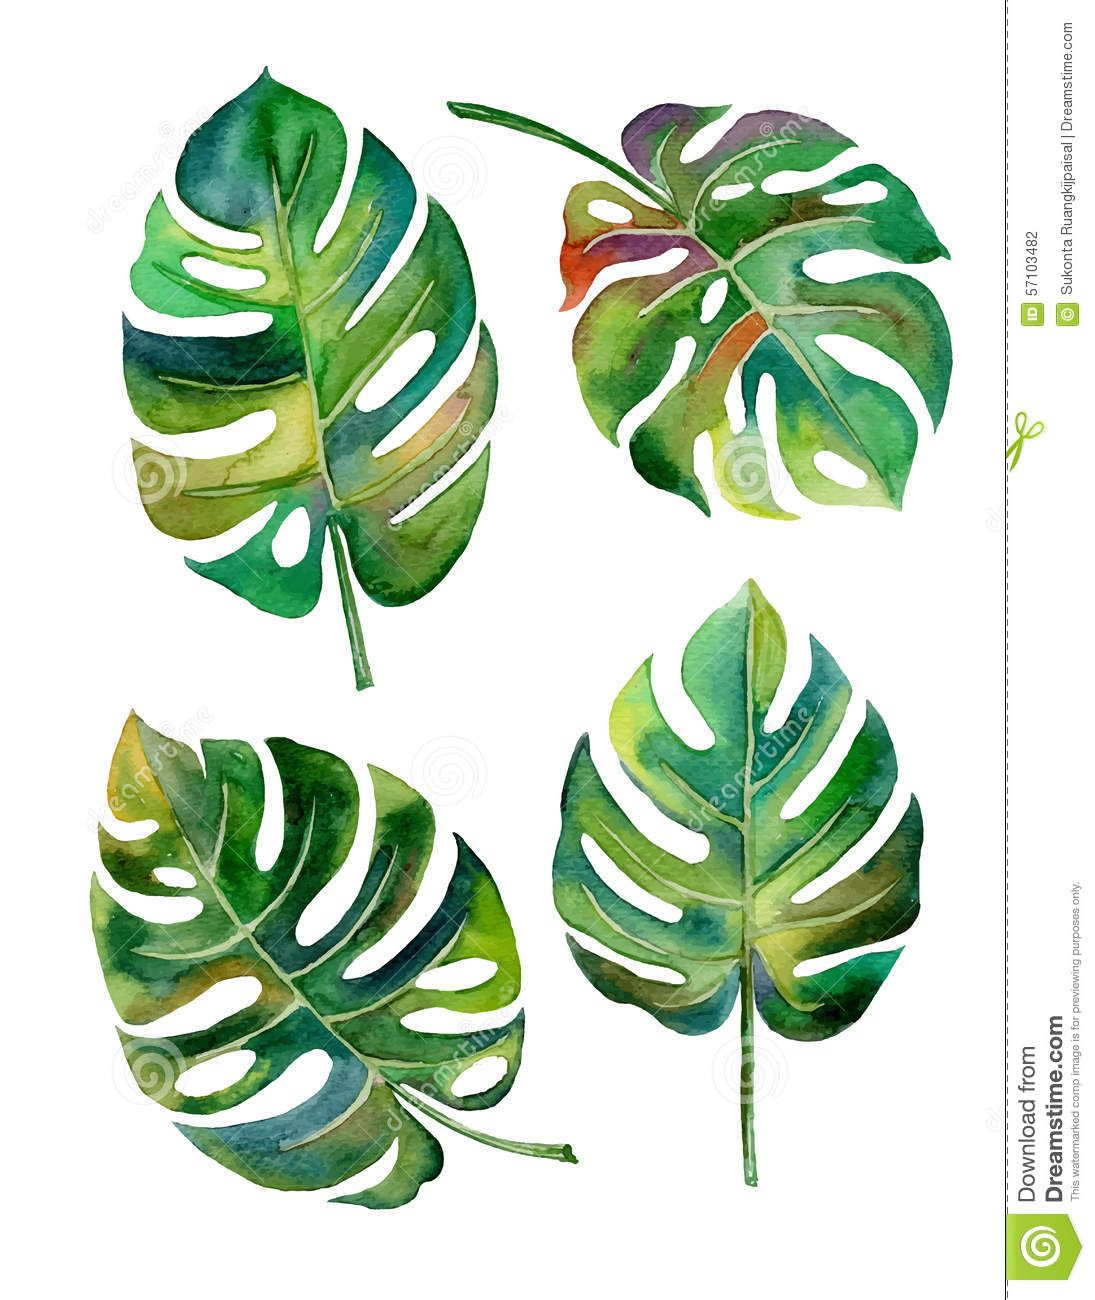 172941c2a0f9 Split Leaf Philodendron Watercolor On White Background Vector - Download  From Over 61 Million High Quality Stock Photos